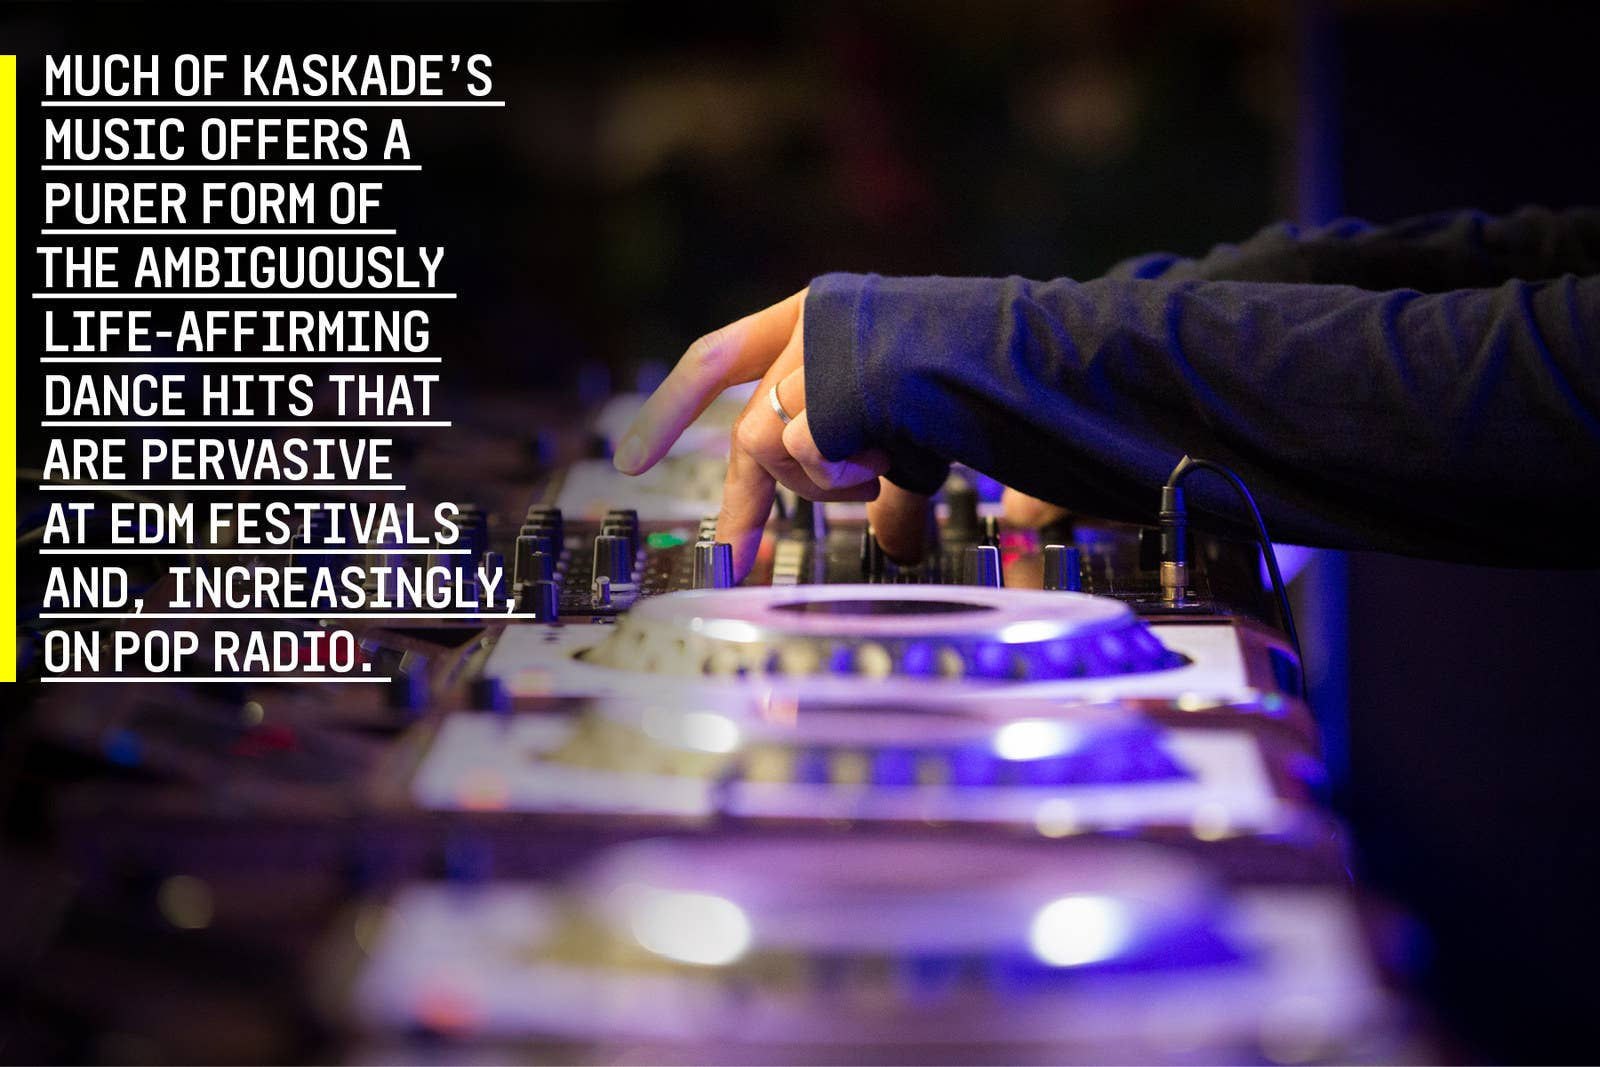 The #Blessed Life Of Kaskade, EDM's Voice Of Reason